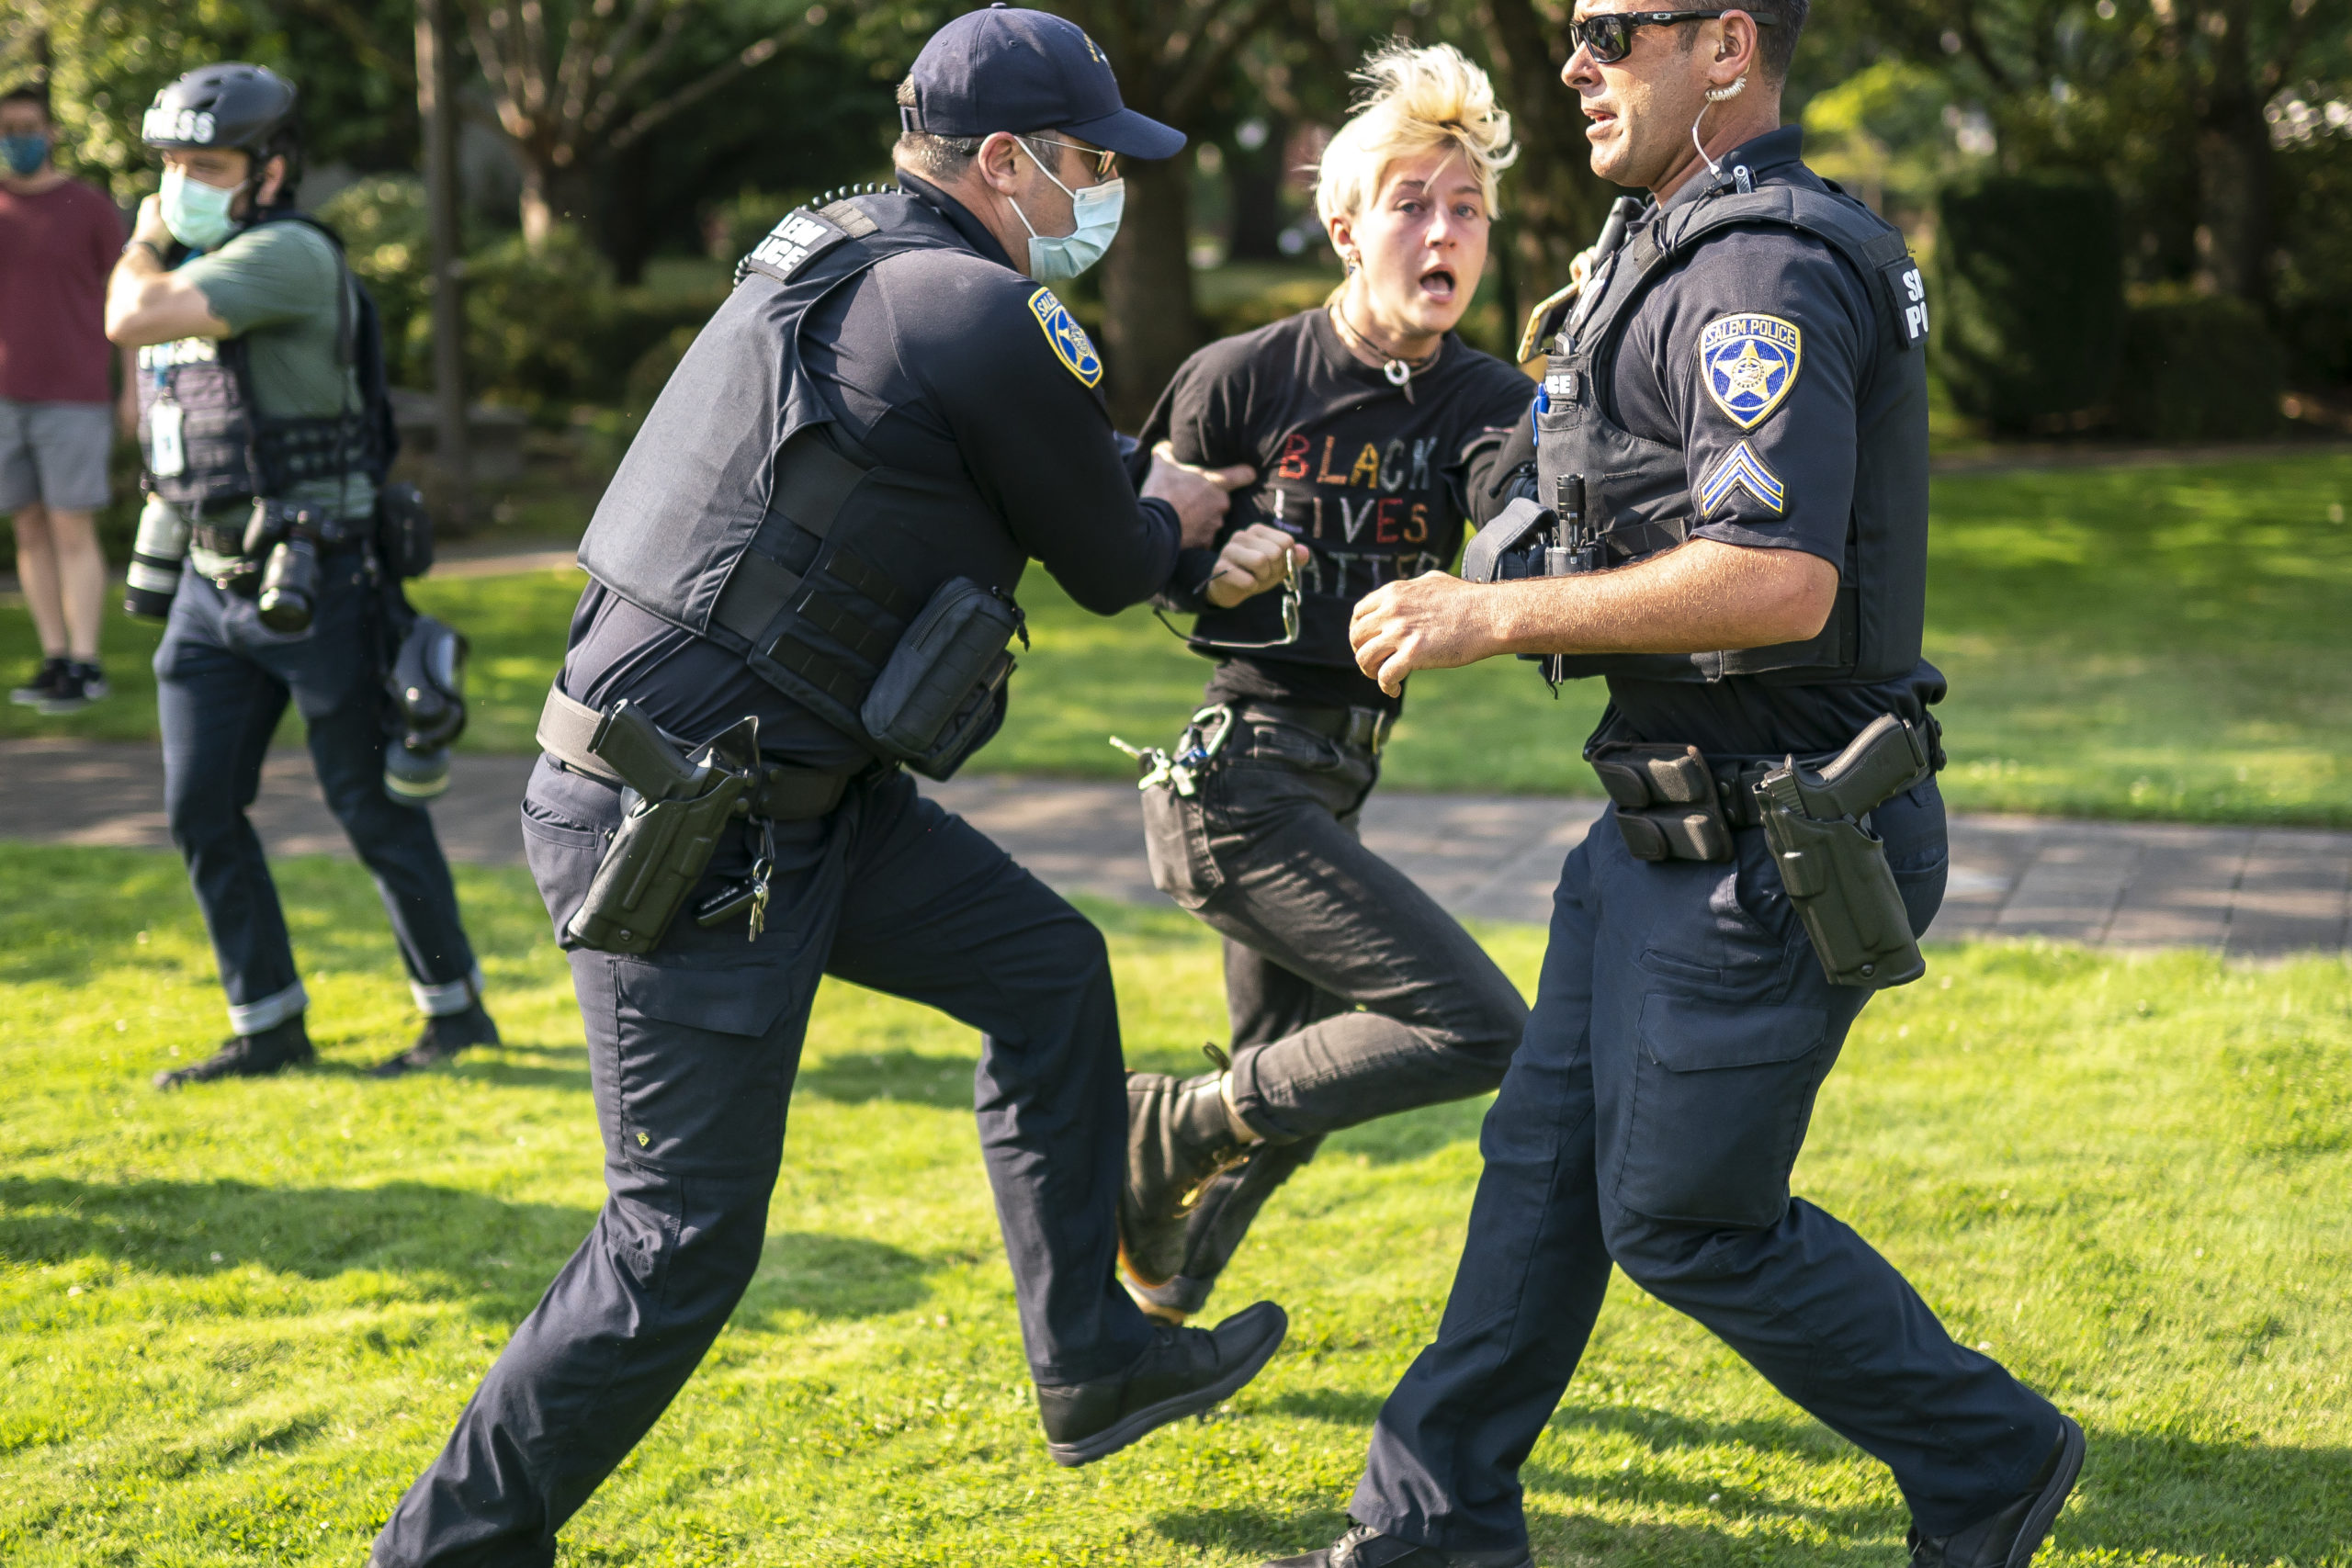 SALEM OR - SEPTEMBER 7: Salem police escort a counter protester away from the scene after a clash with a far-right protester on September 7, 2020 in Portland, Oregon. A Pro-Trump caravan drove into the Oregon state capitol Monday afternoon where far-right protesters clashed with counter-protesters. (Photo by Nathan Howard/Getty Images)